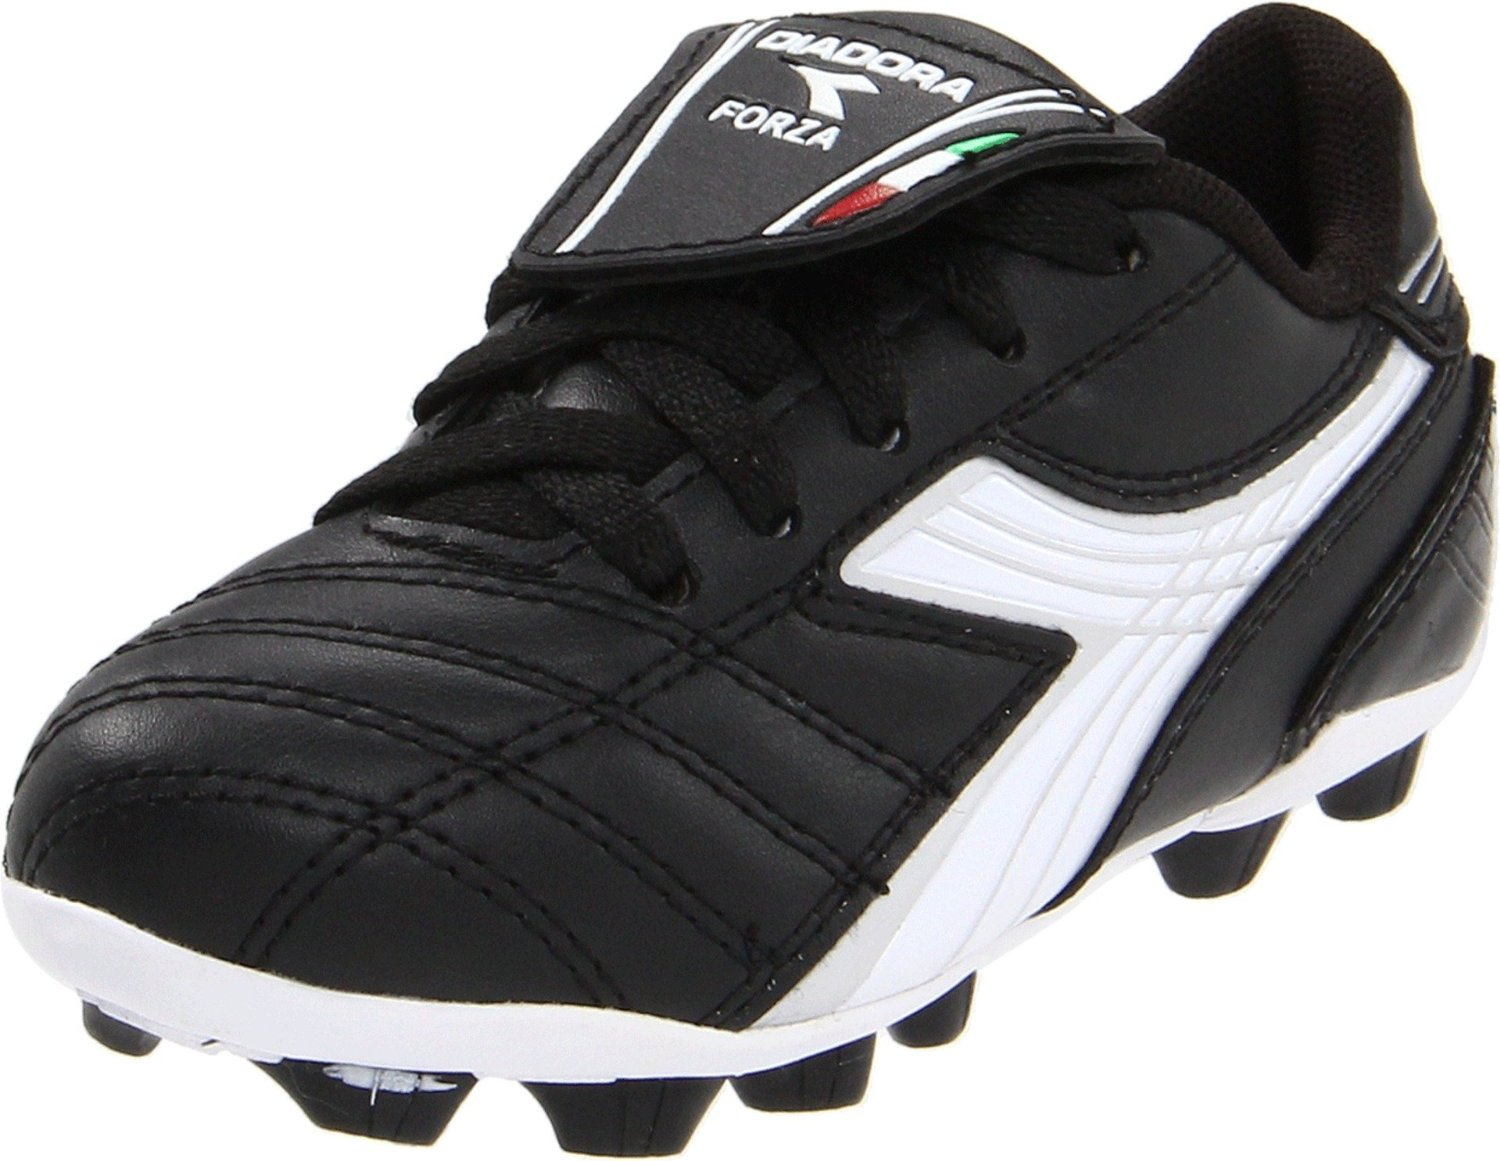 Diadora Forza soccer cleats for kids by Code Four Athletics